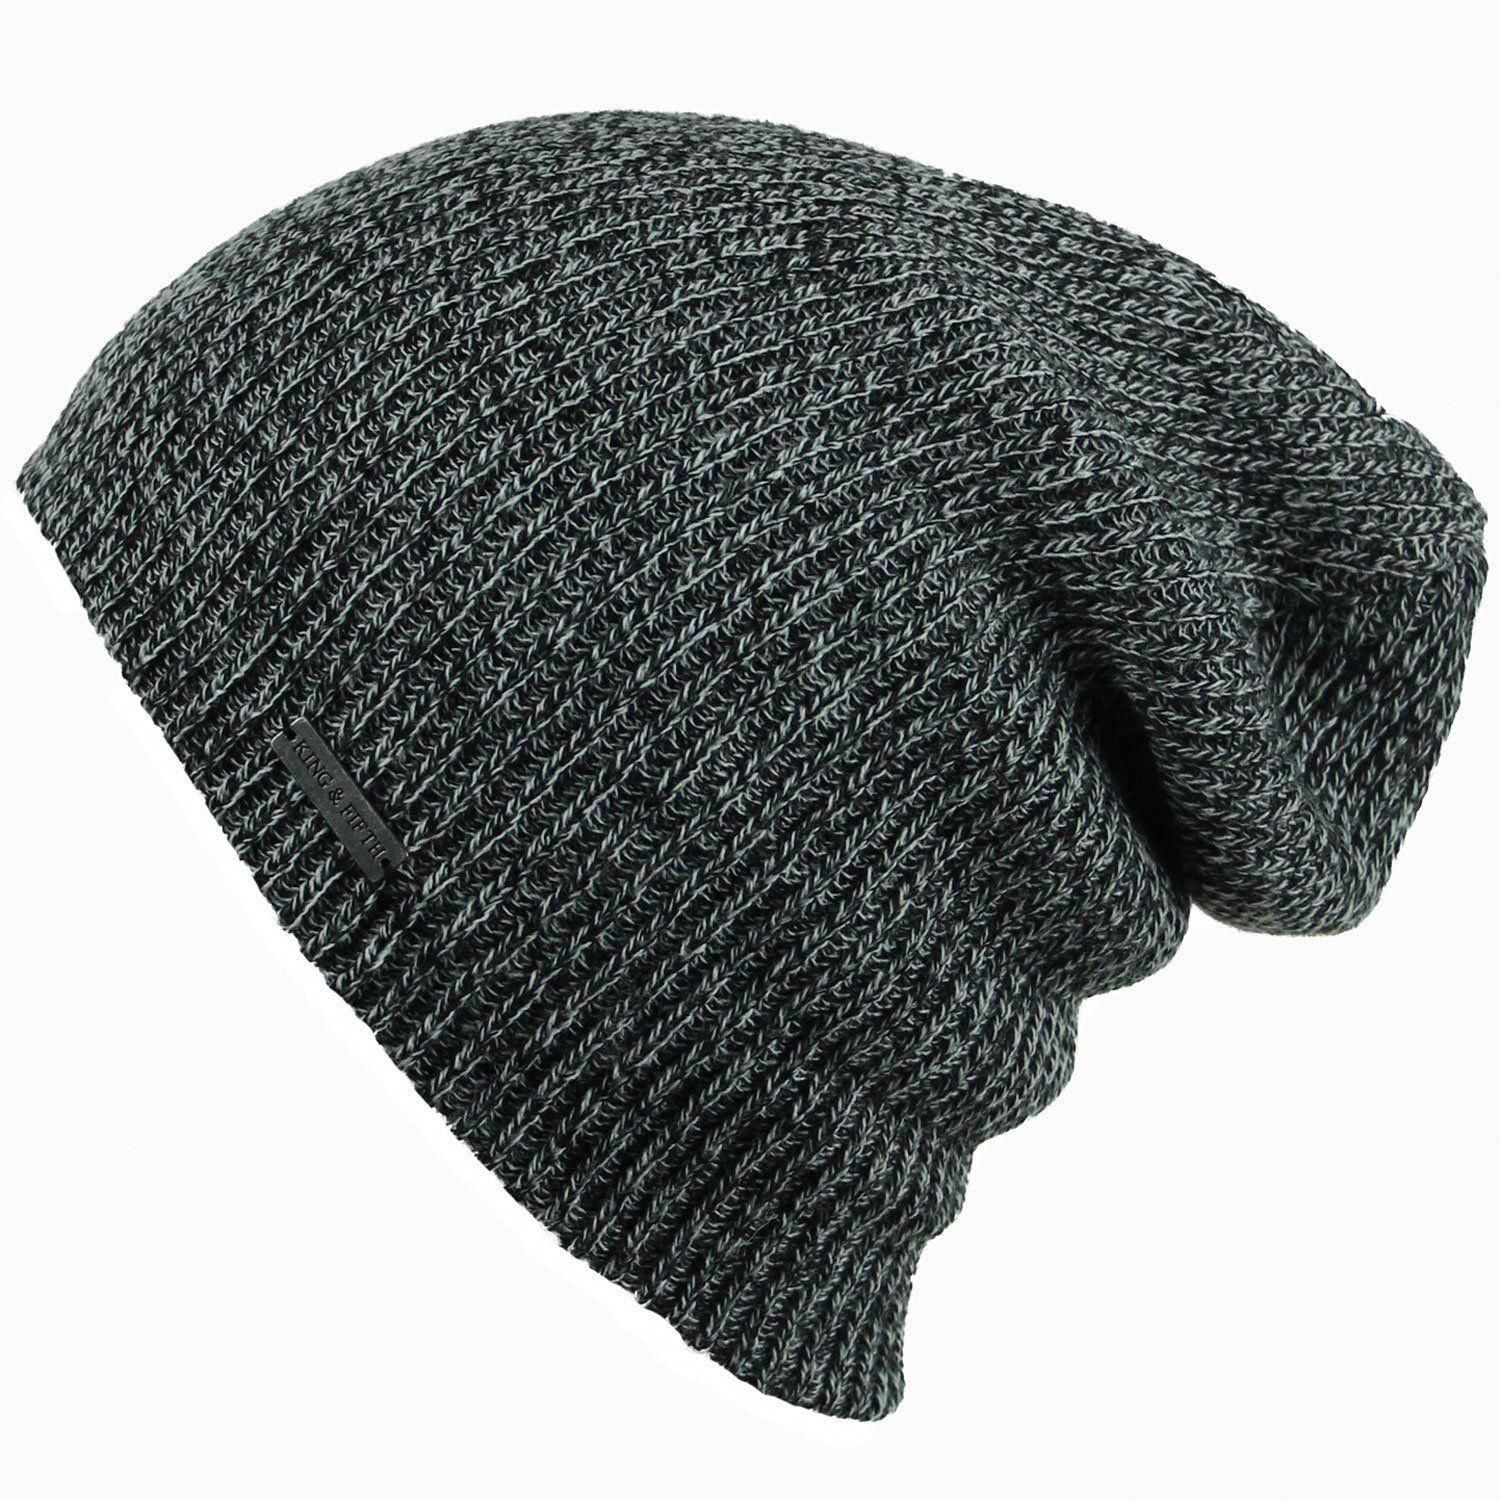 646b85e1136580 Mens Slouchy Beanie - The Forte #Ties | Mens accessories in 2019 ...